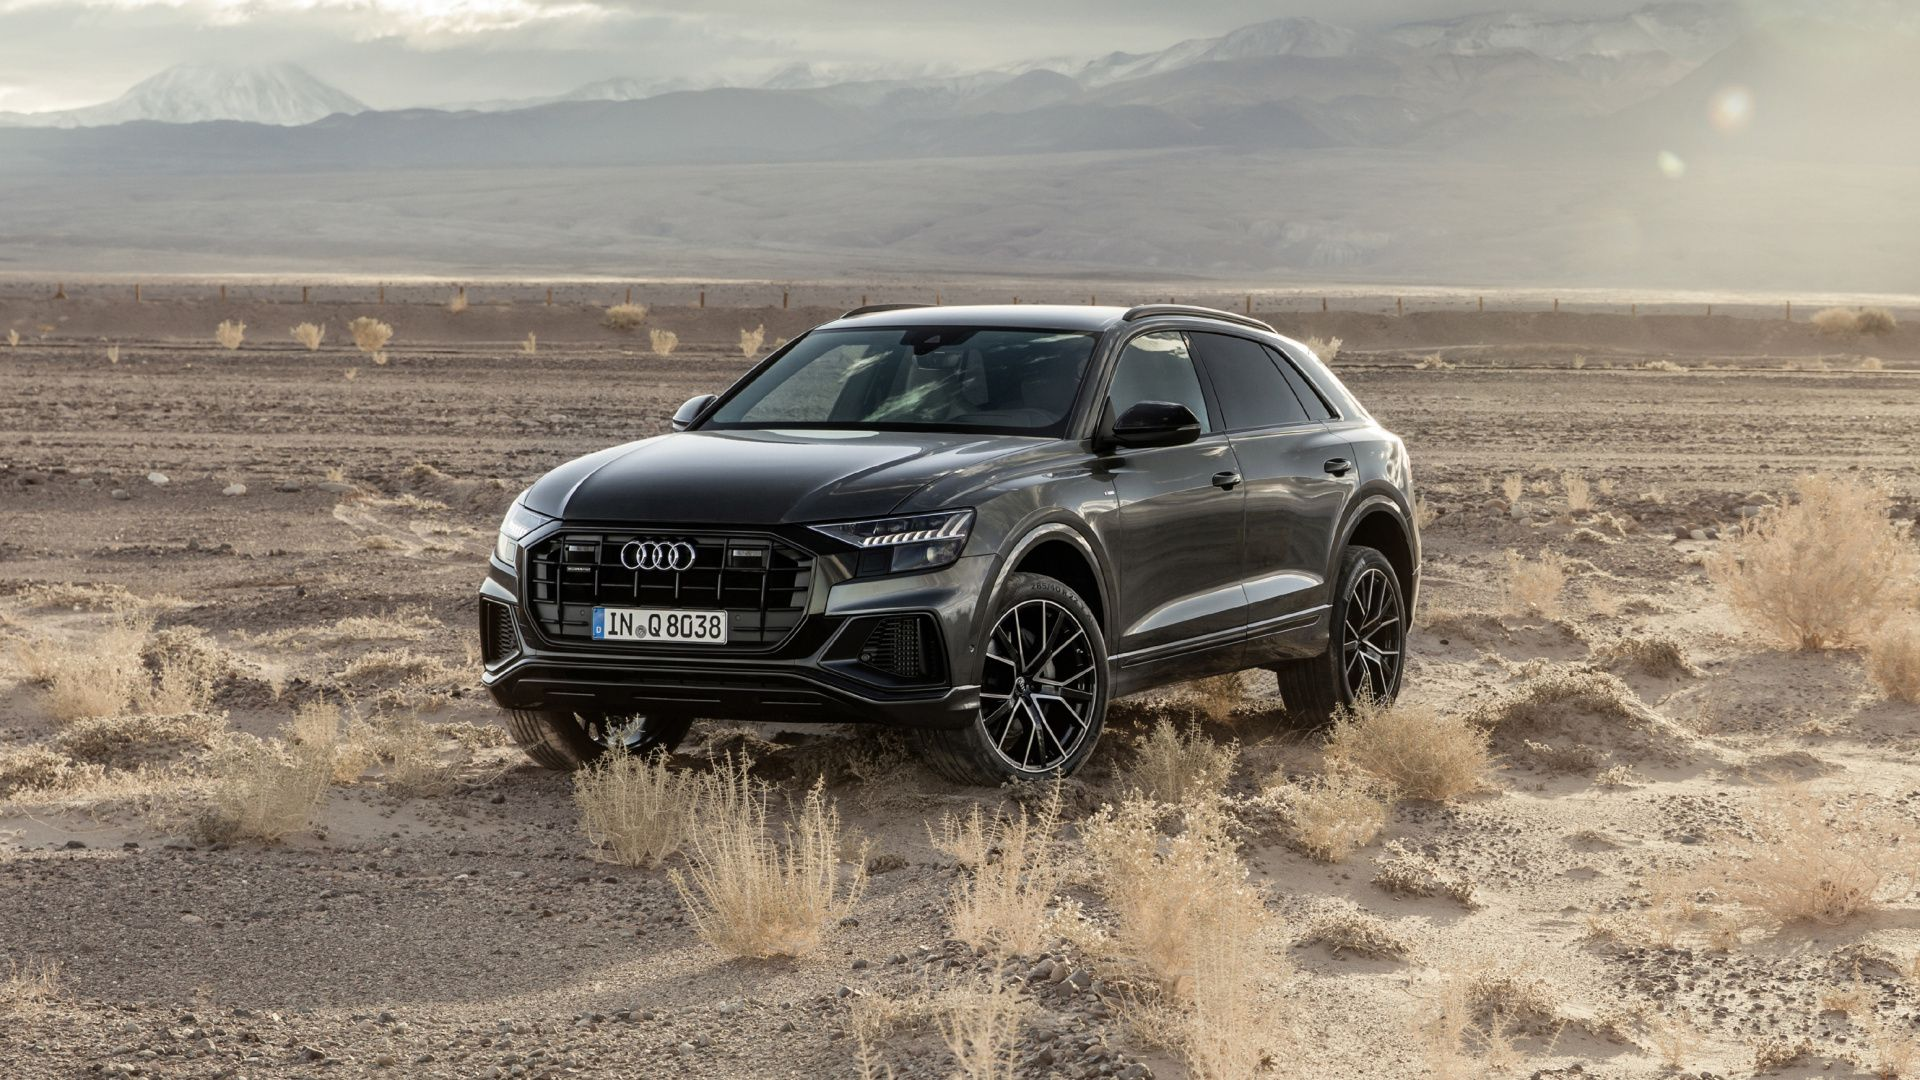 Audi Q8 Wallpaper For Iphone For Widescreen Wallpaper On Flowerswallpaper Info If You Like It Iphone Android Wallpaper A Super Car Racing Audi Super Cars